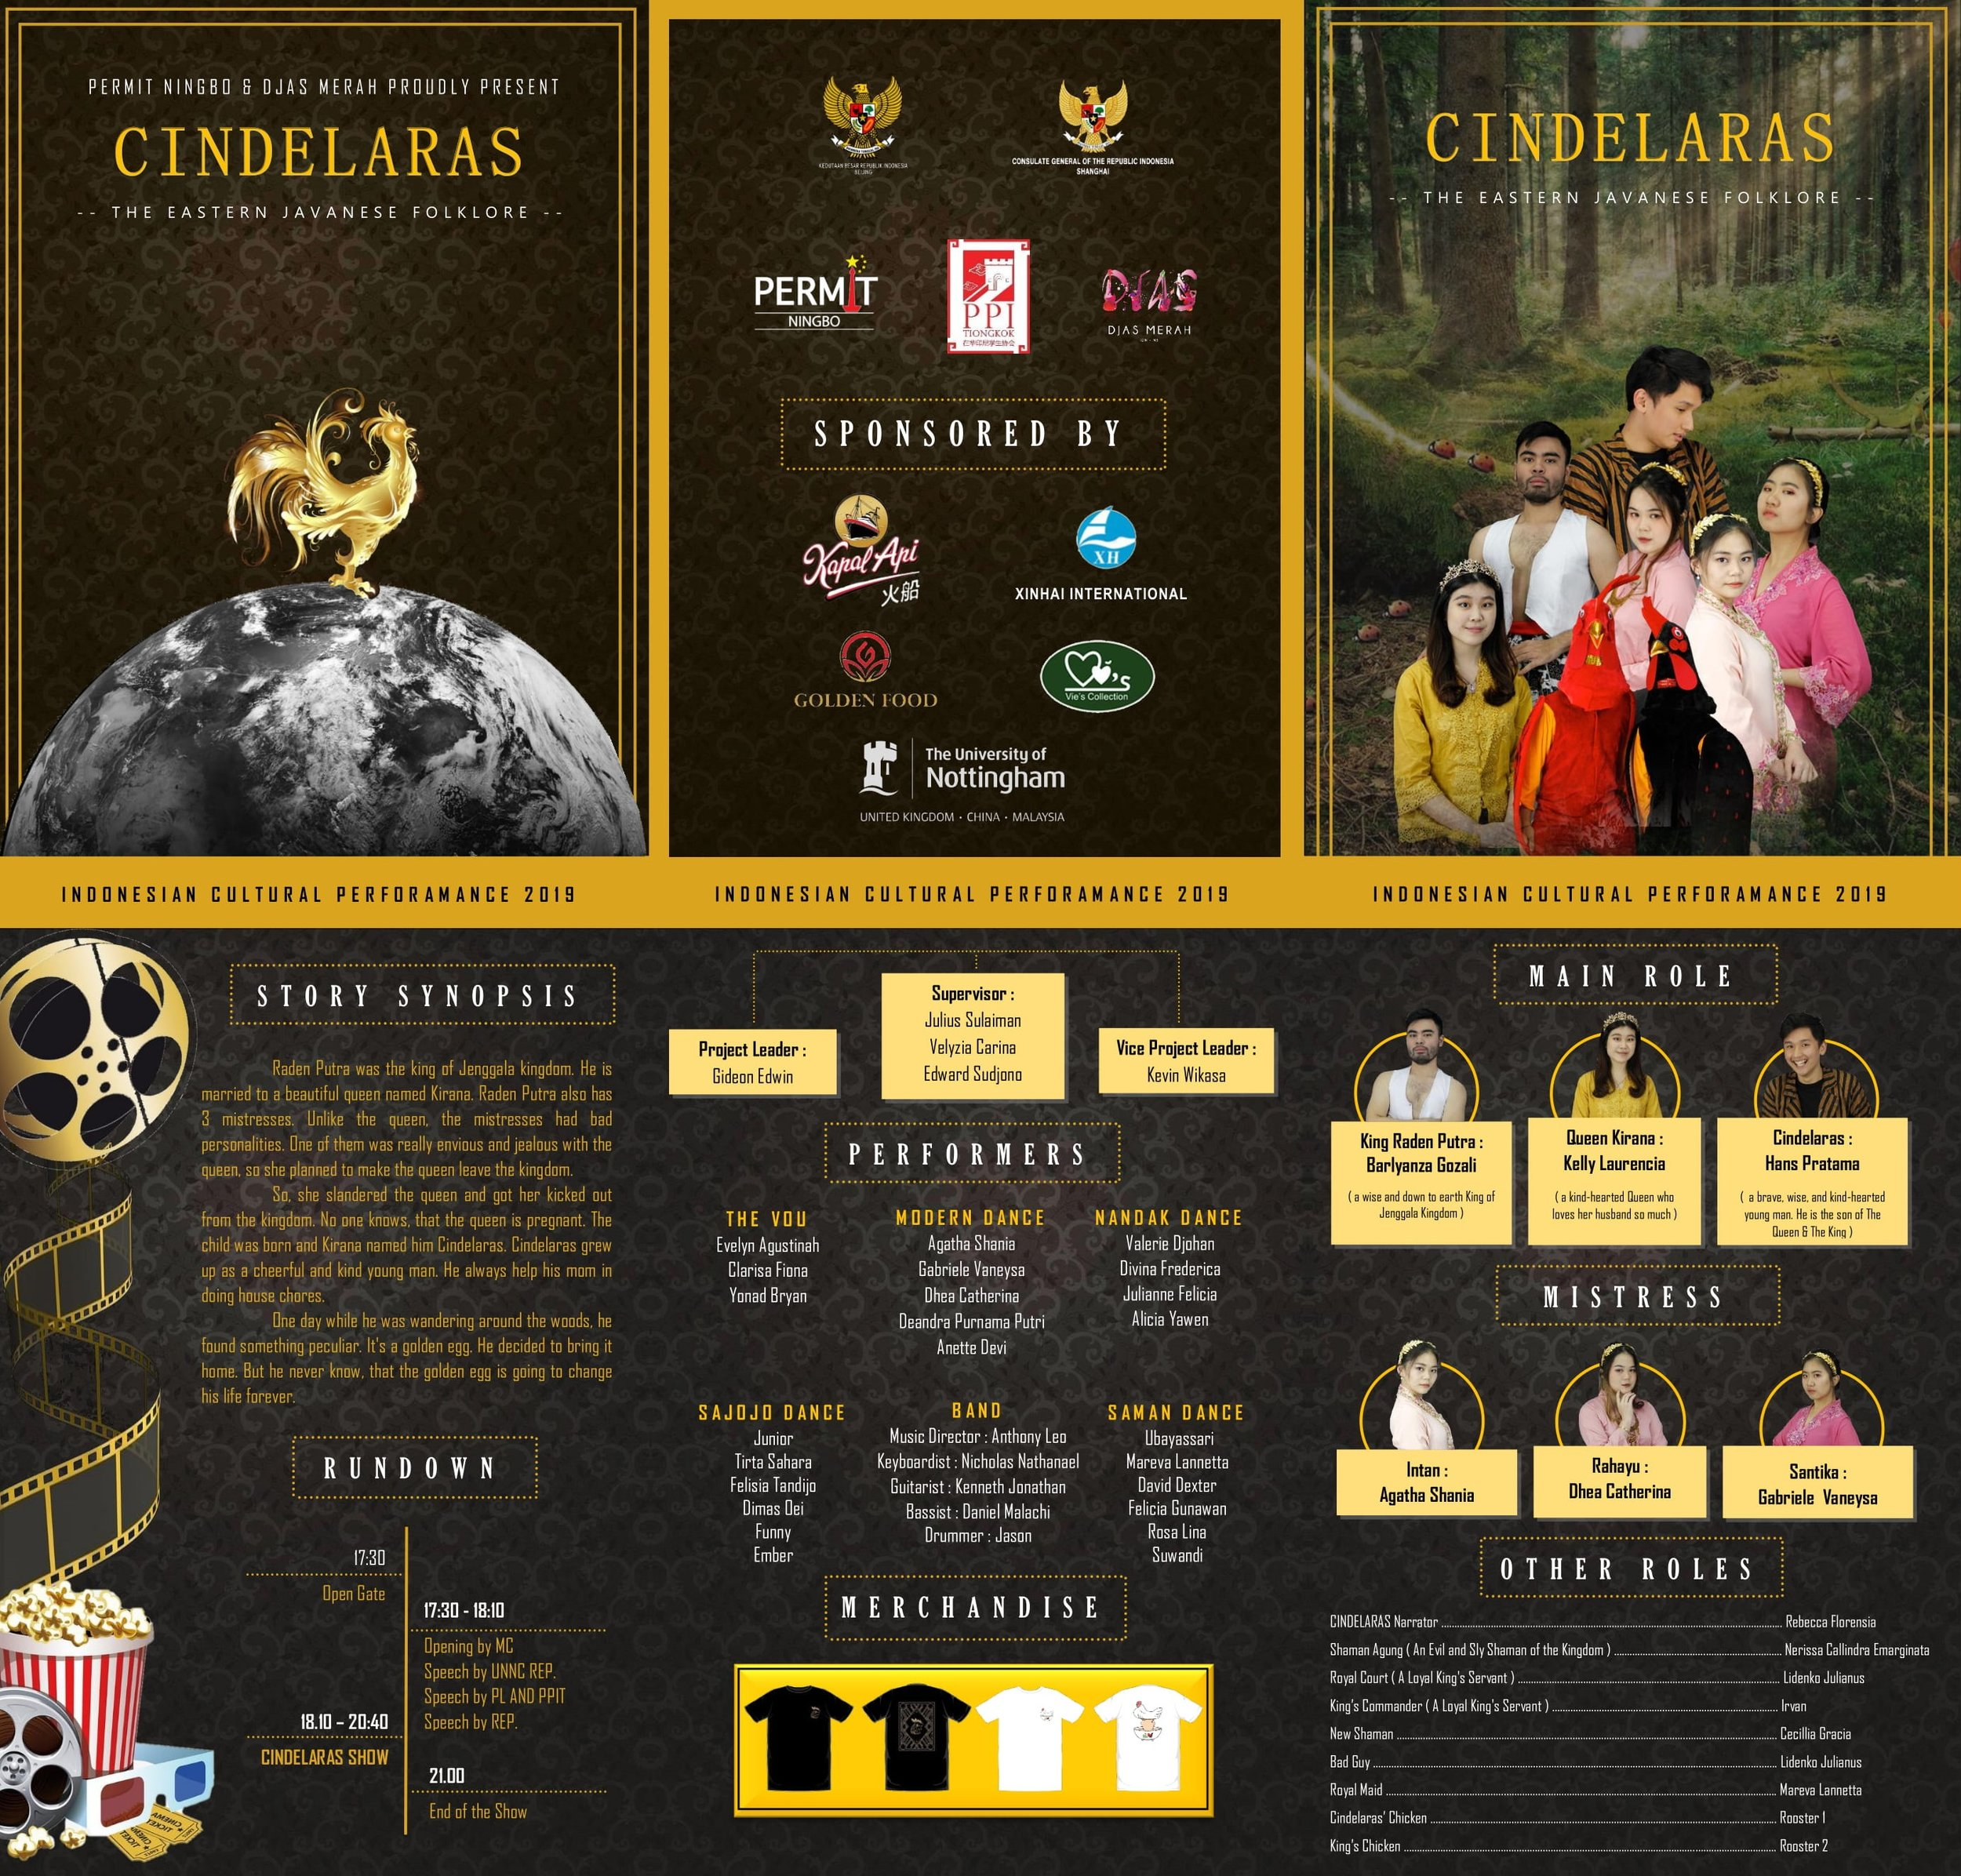 "ICP (Indonesian Cultural Performance) 2019   PERMIT NINGBO's and DJAS MERAH's spectacular event! Proudly presents ""Cindelaras"" The Eastern Javanese Folklore."